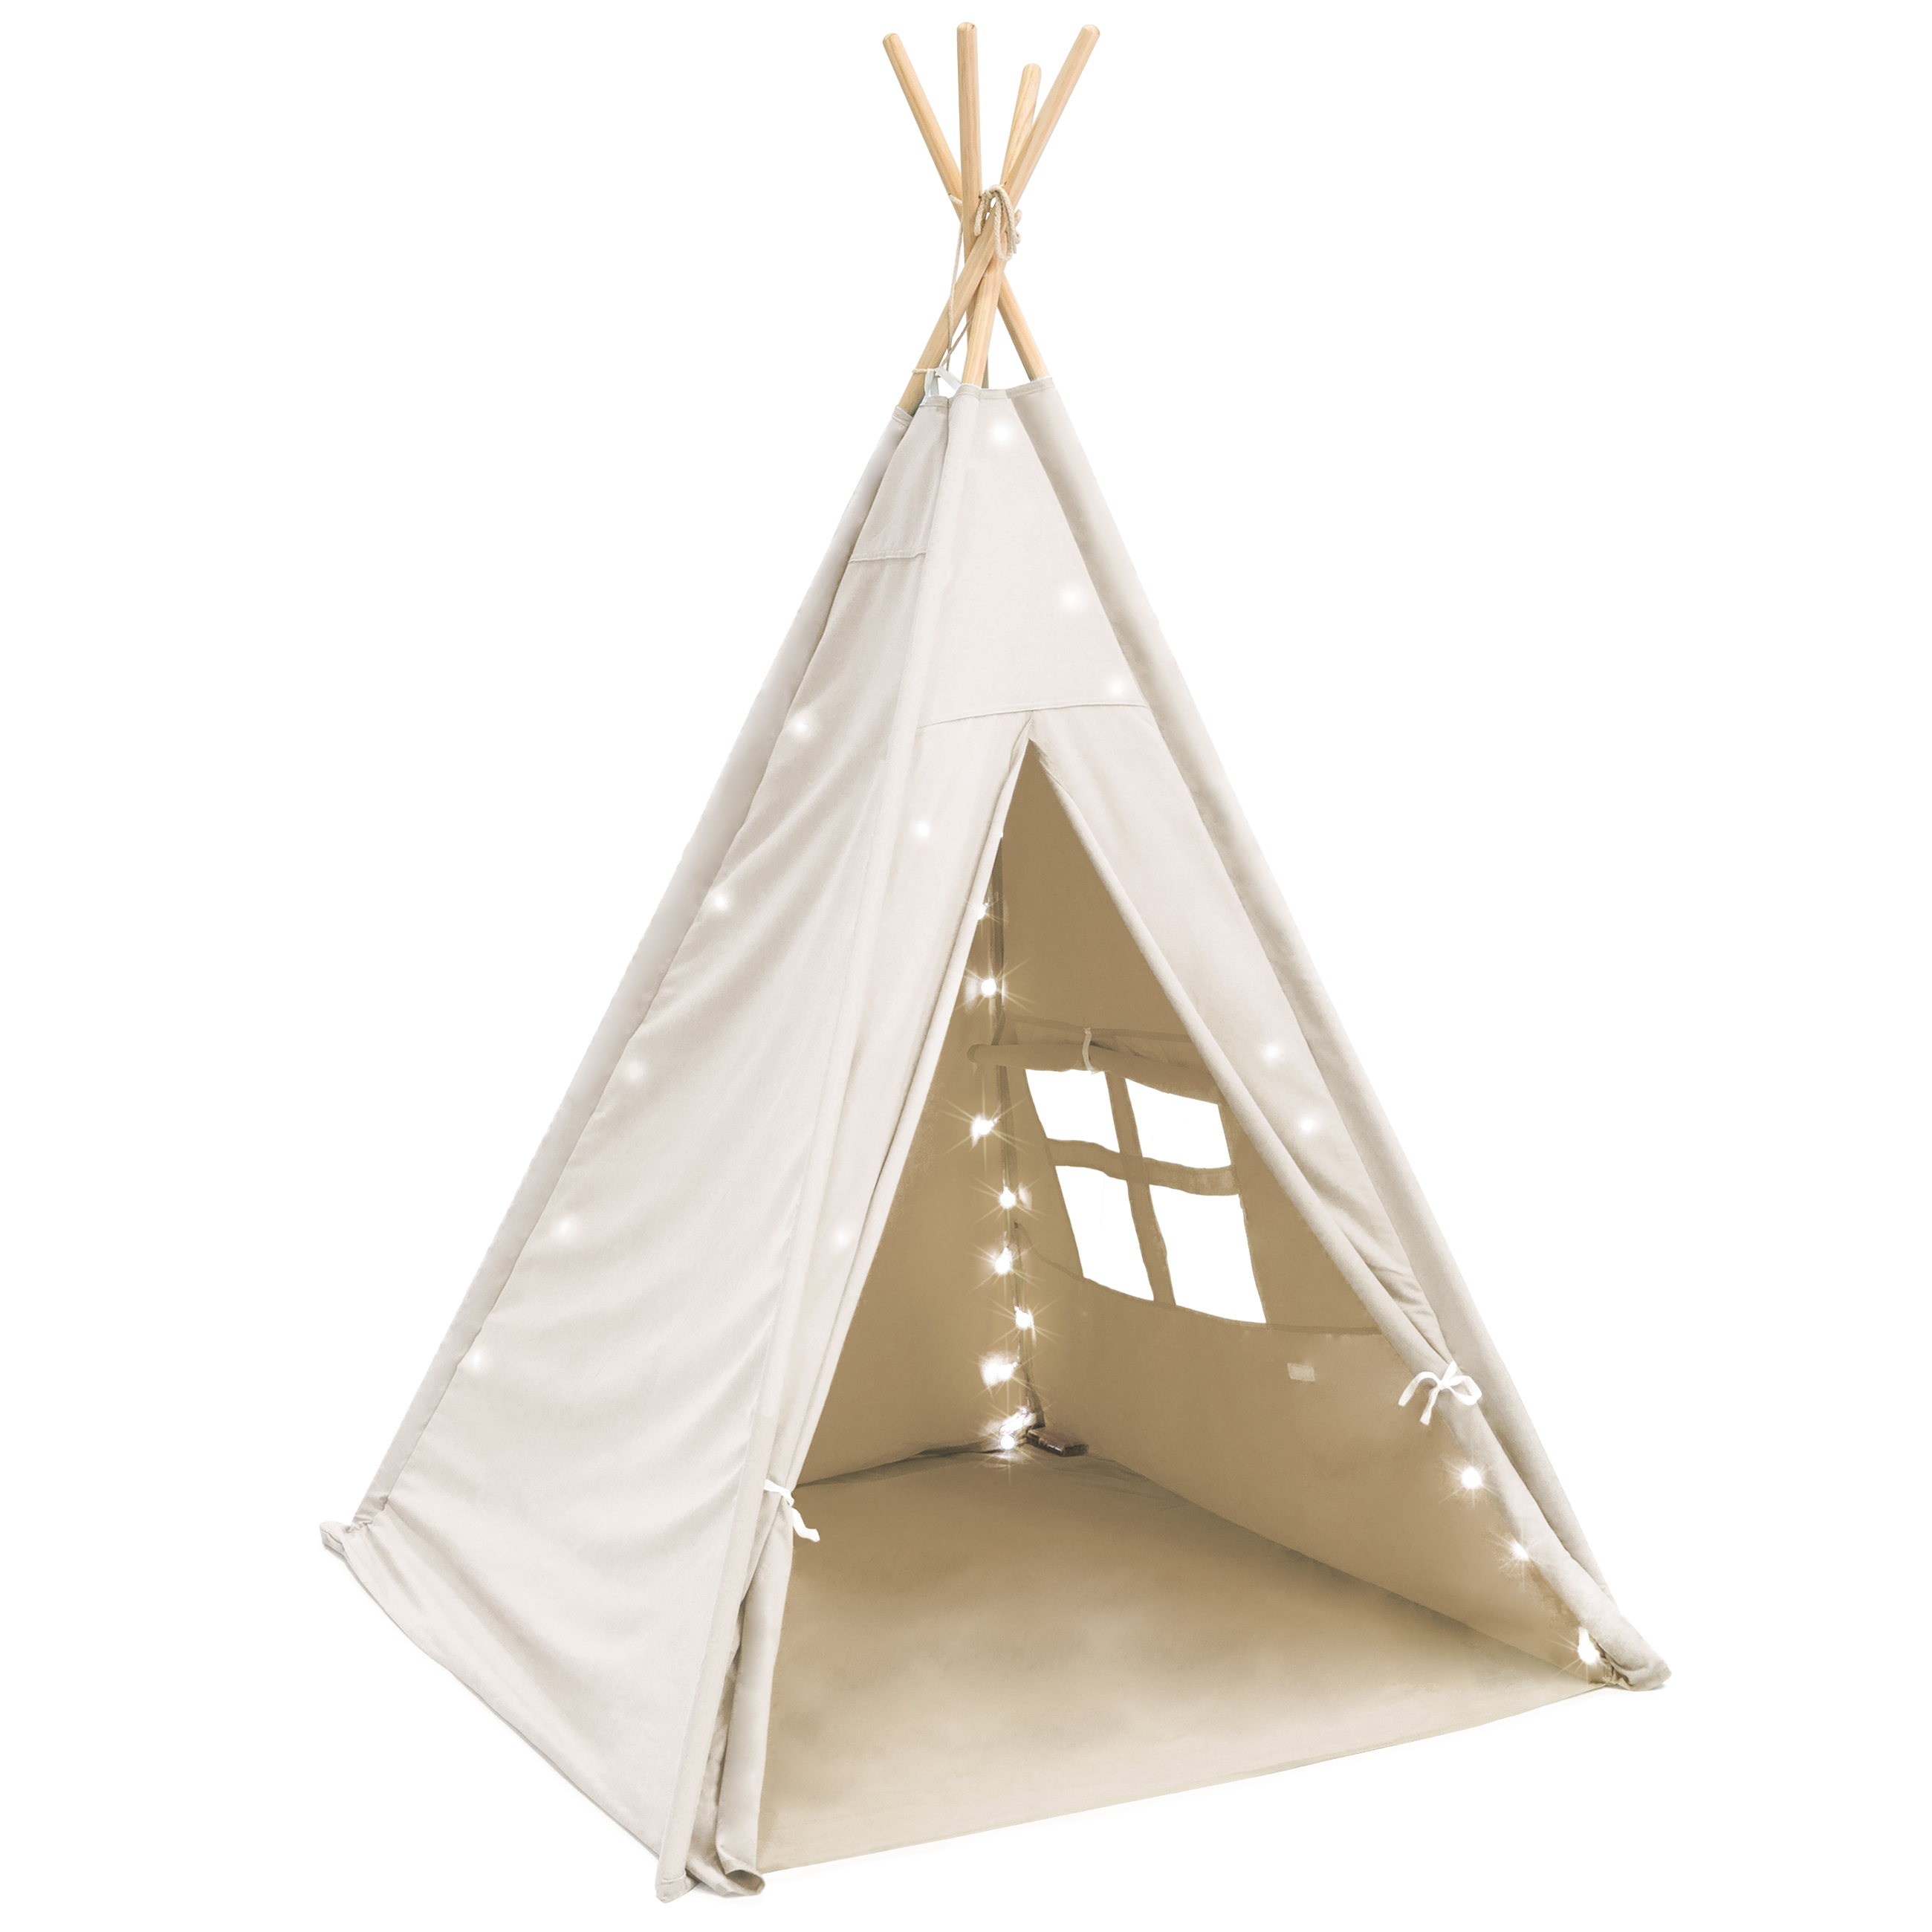 newest df112 a2456 Details about Kids Indian Teepee 6 ft Play Tent Cotton Canvas Playhouse  with LED Lights White